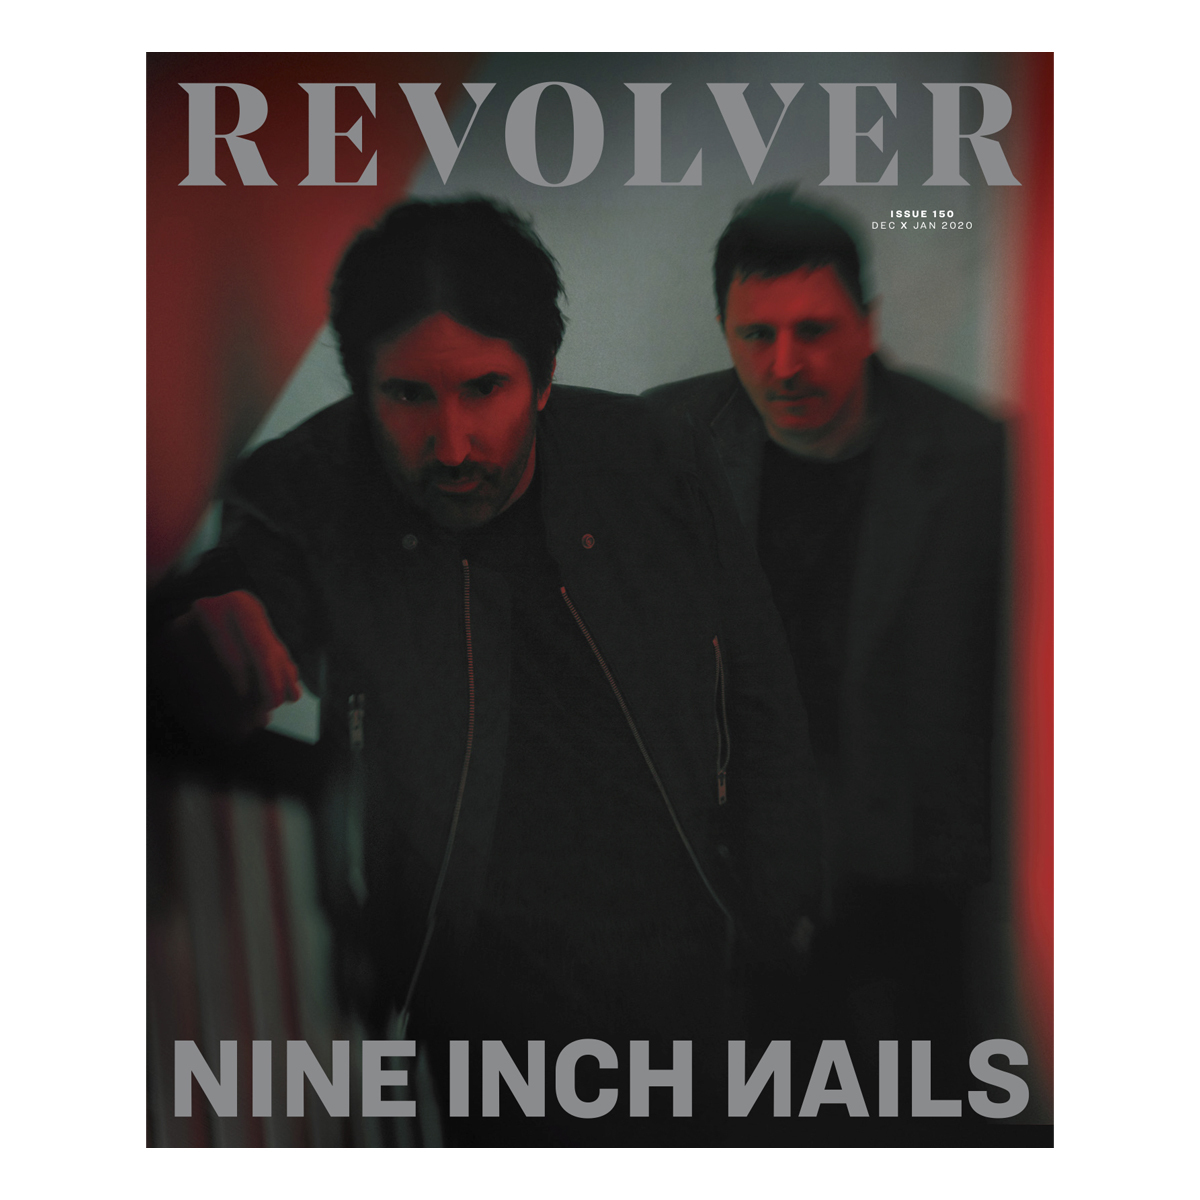 DEC/JAN 2020 ISSUE FEATURING NINE INCH NAILS — BOX SET